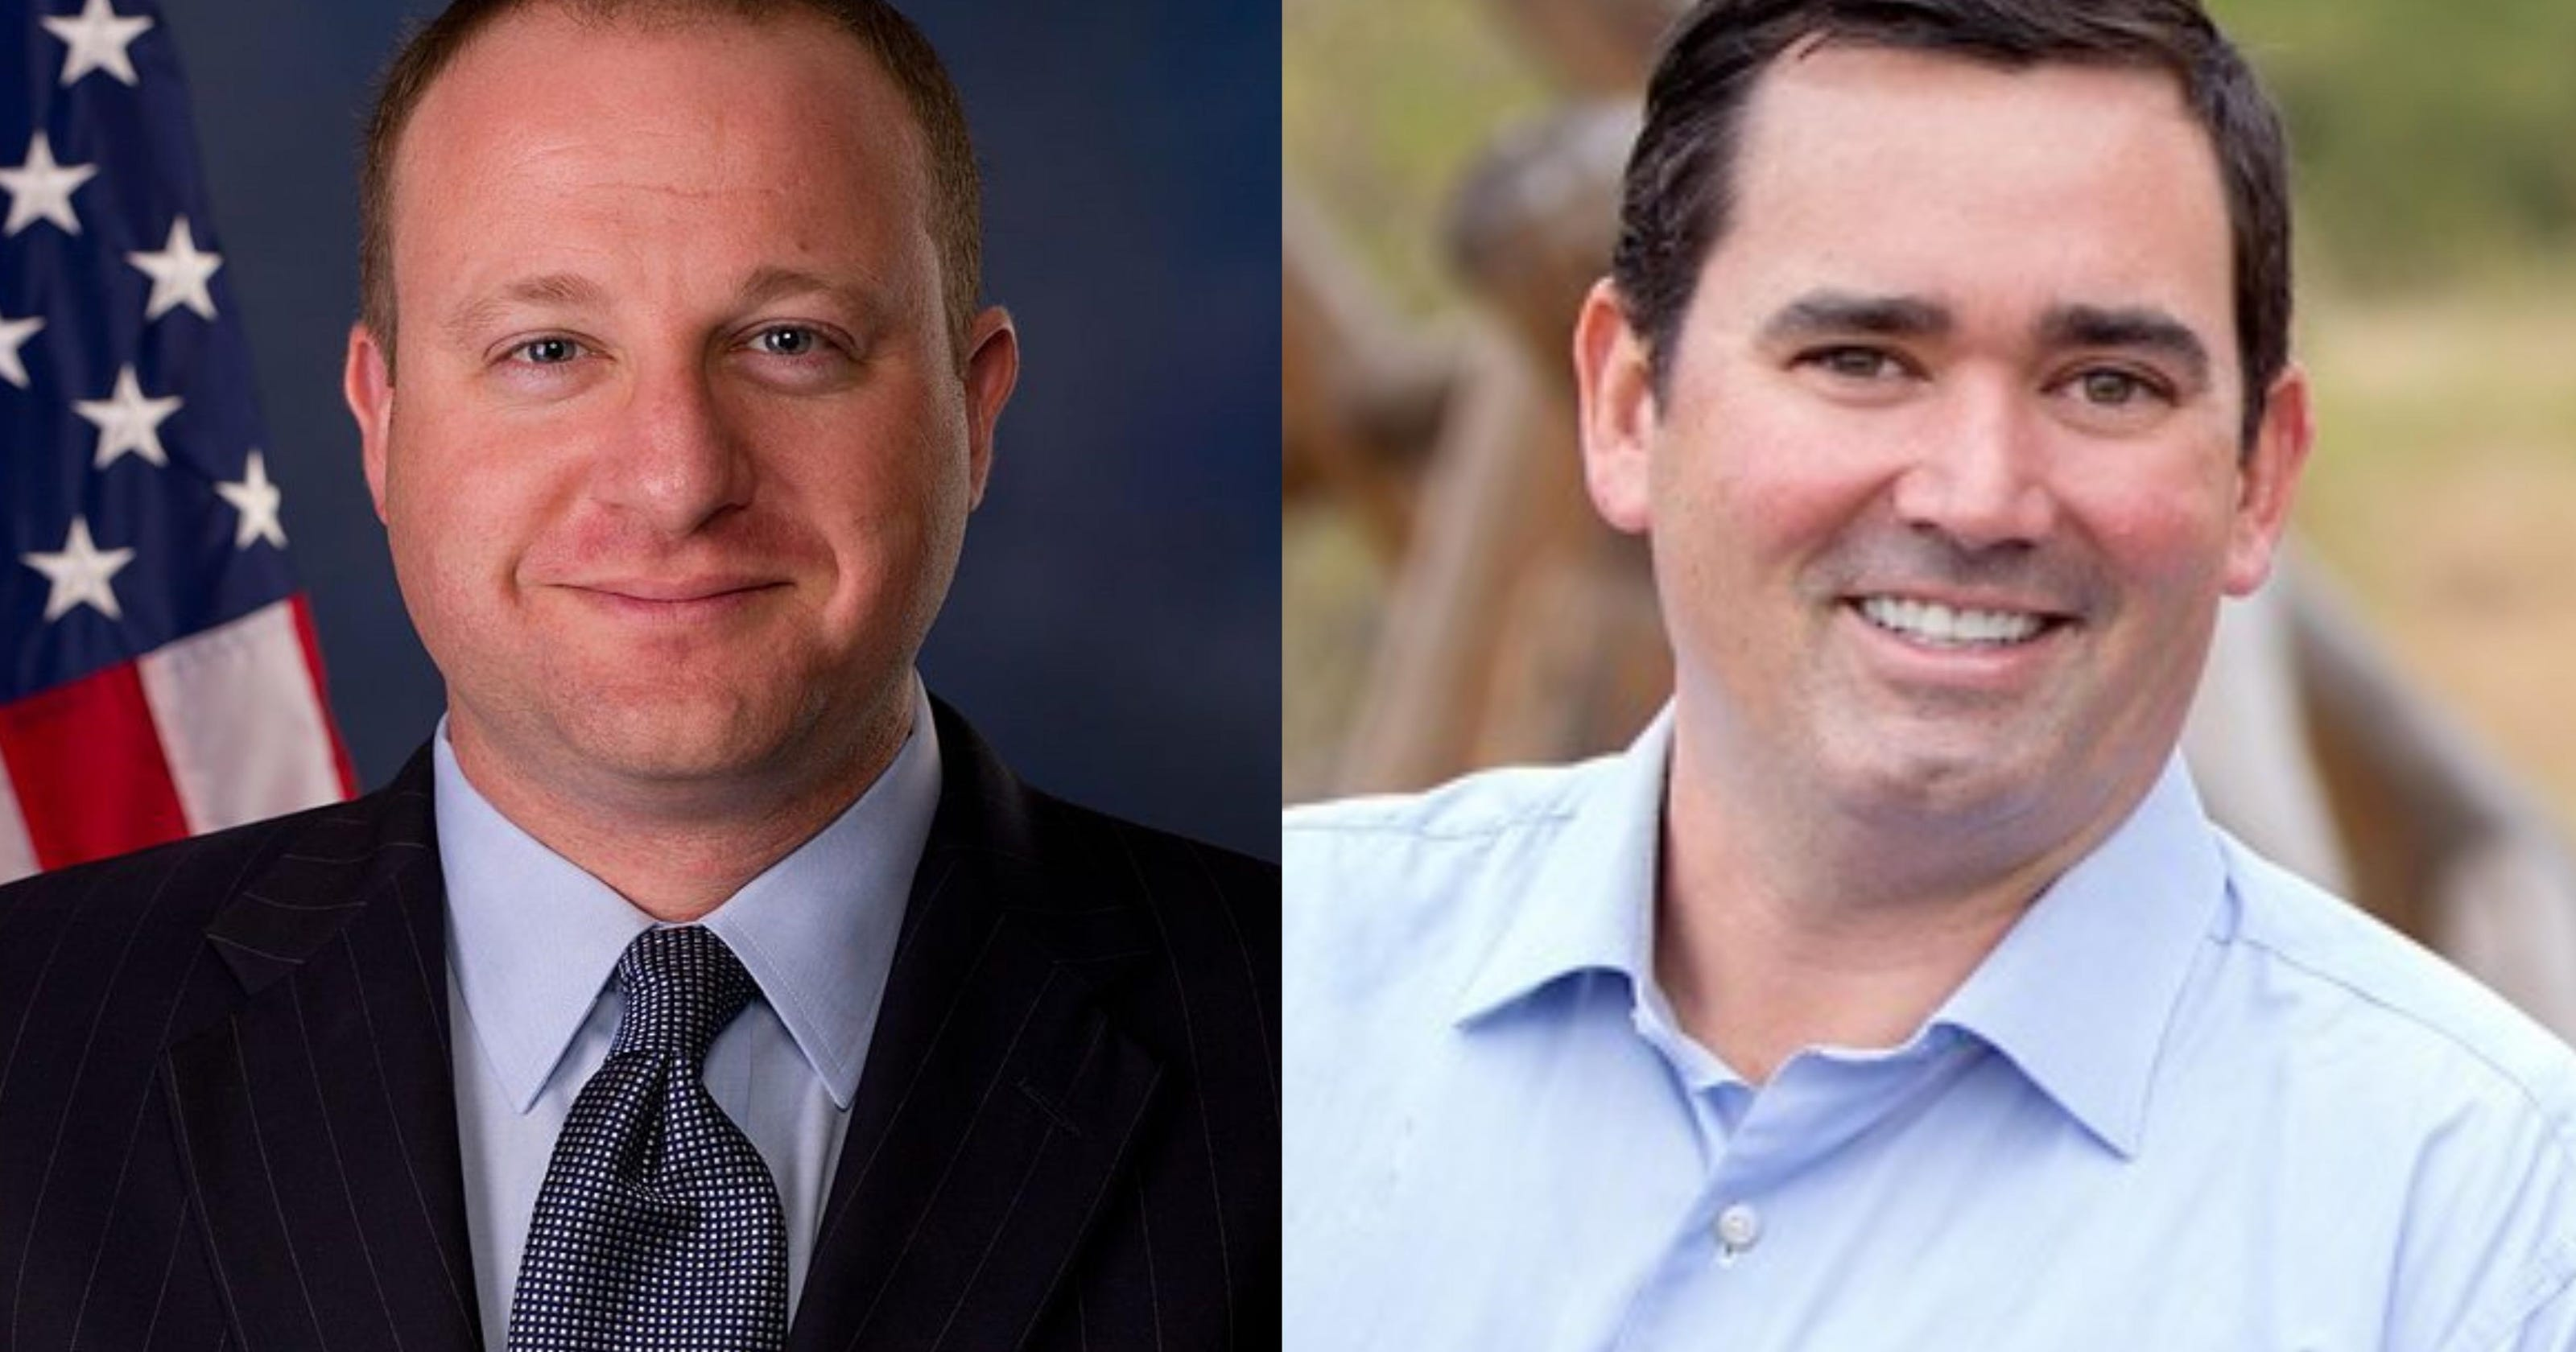 In 2018 Colorado governor race, Polis, Stapleton argue who's